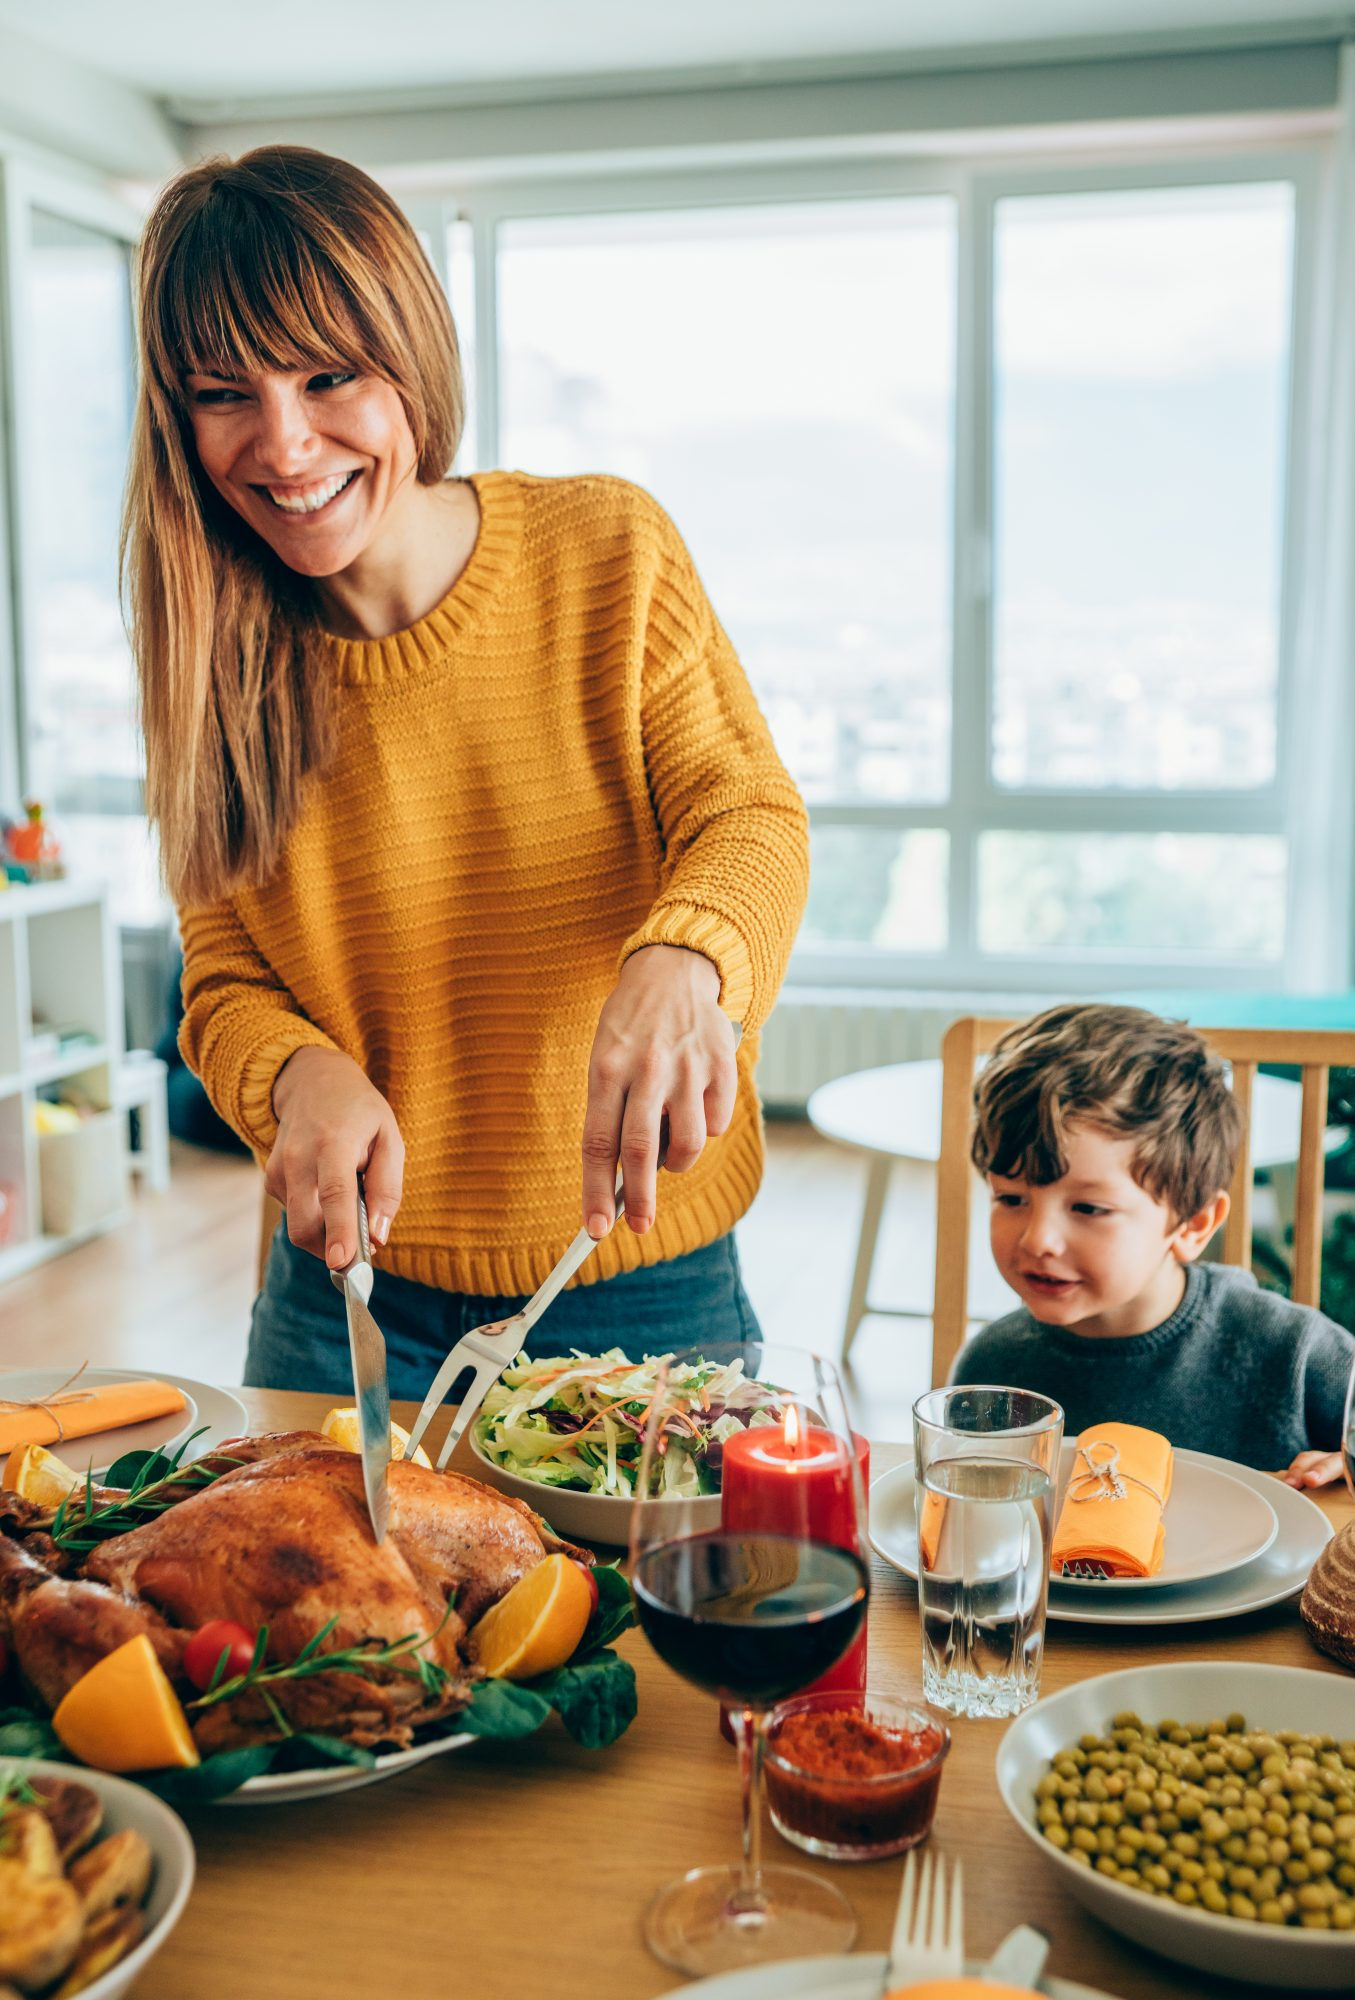 woman carving thanksgiving turkey at table